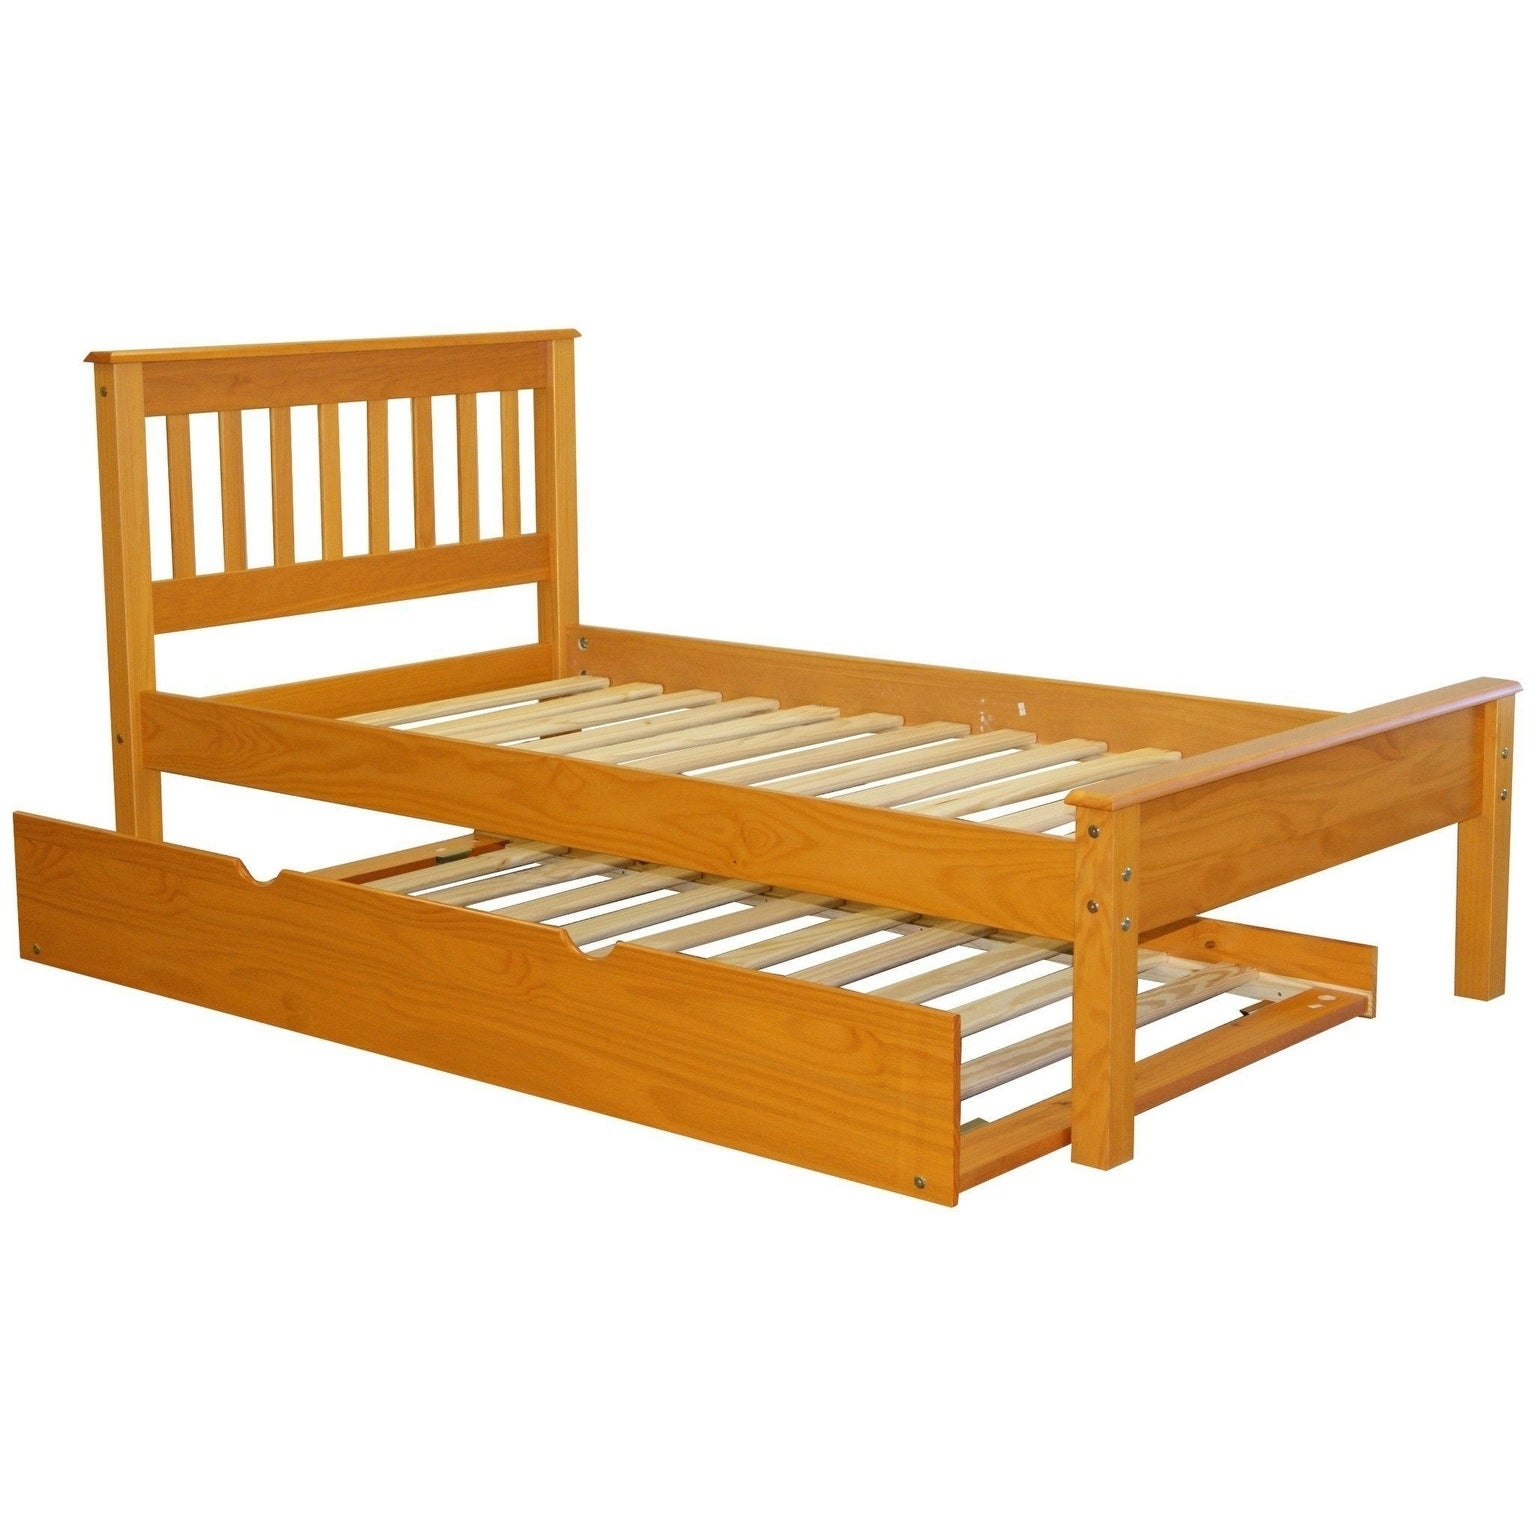 Bedz King Honey Finish Pine Mission Style Twin Bed With Trundle